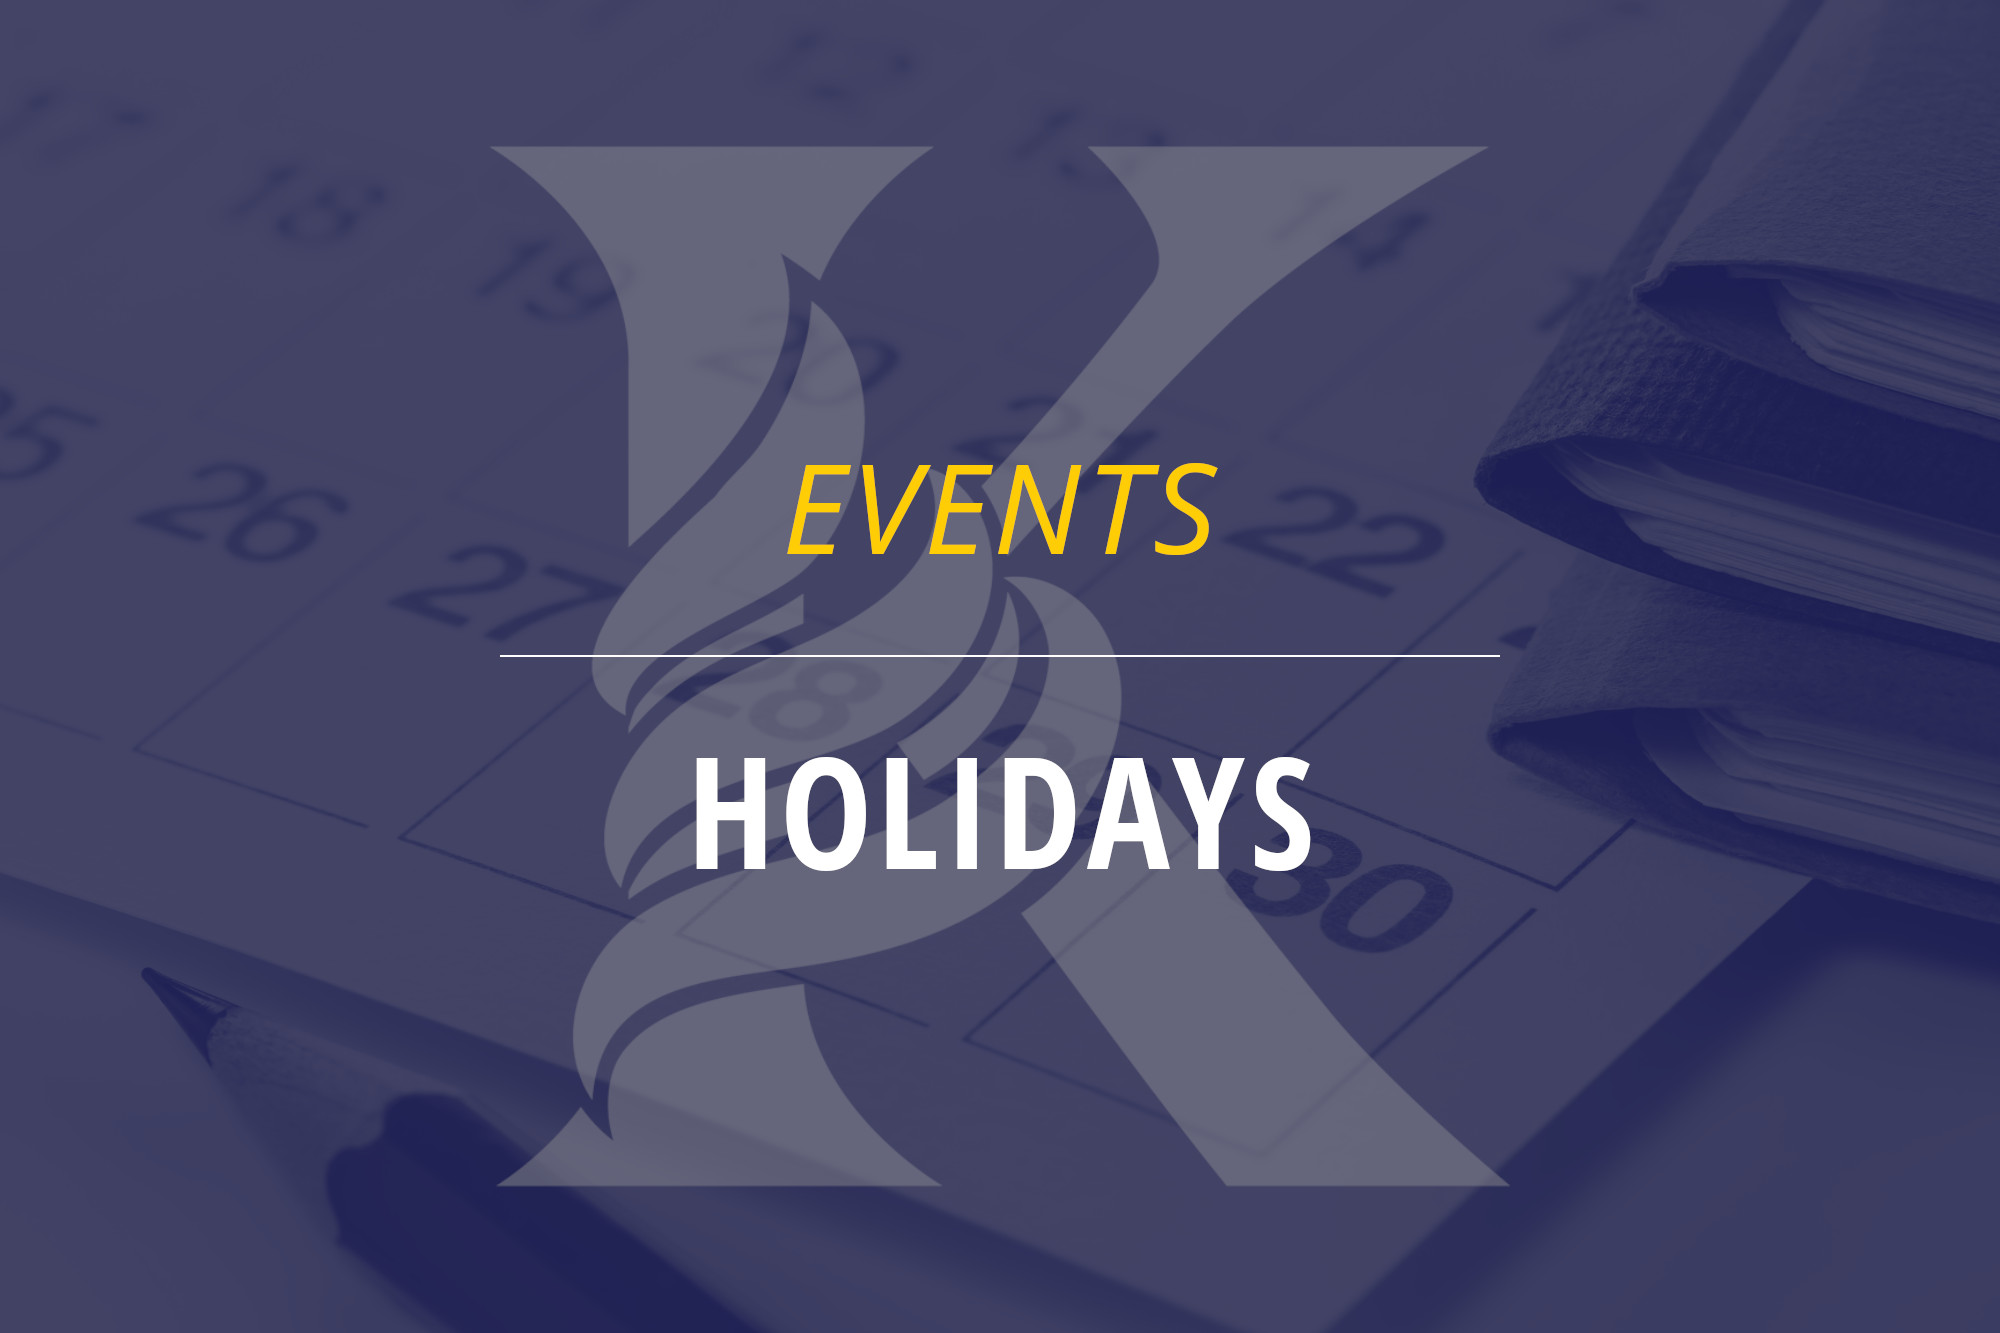 KCA K logo with text Events Holidays with calendar in the background